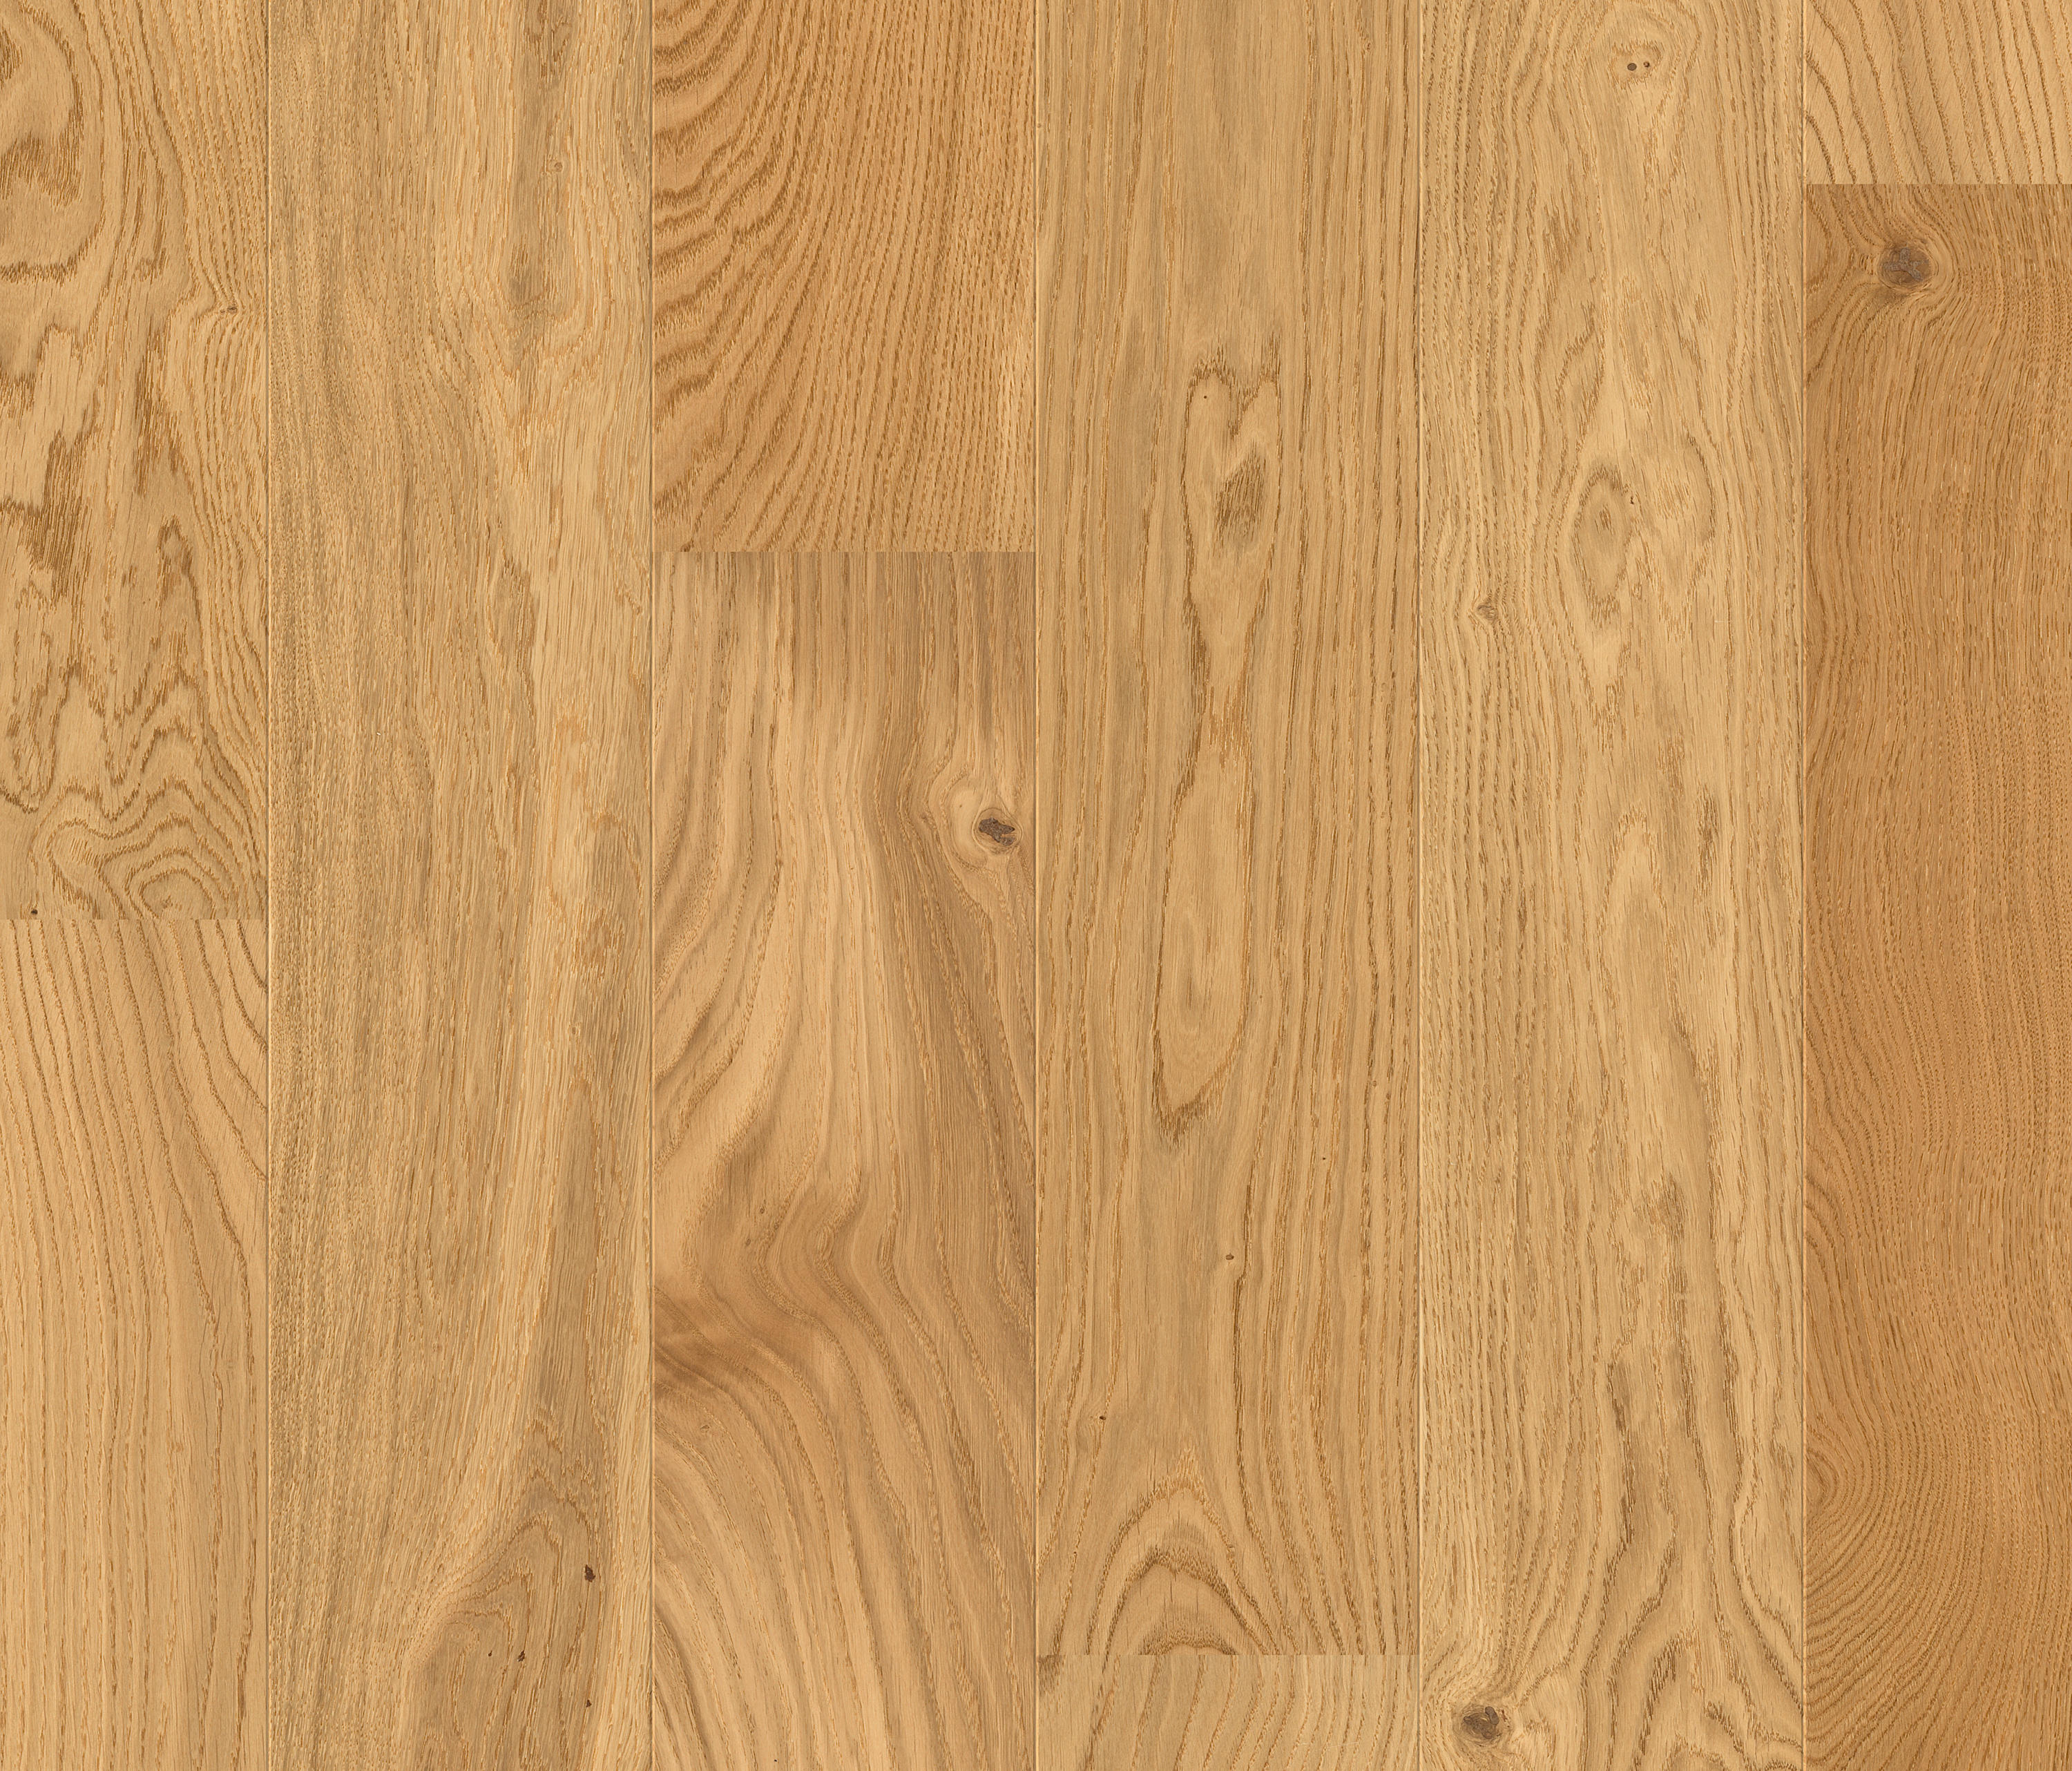 Gotland Castle Oak Wood Flooring From Pergo Architonic